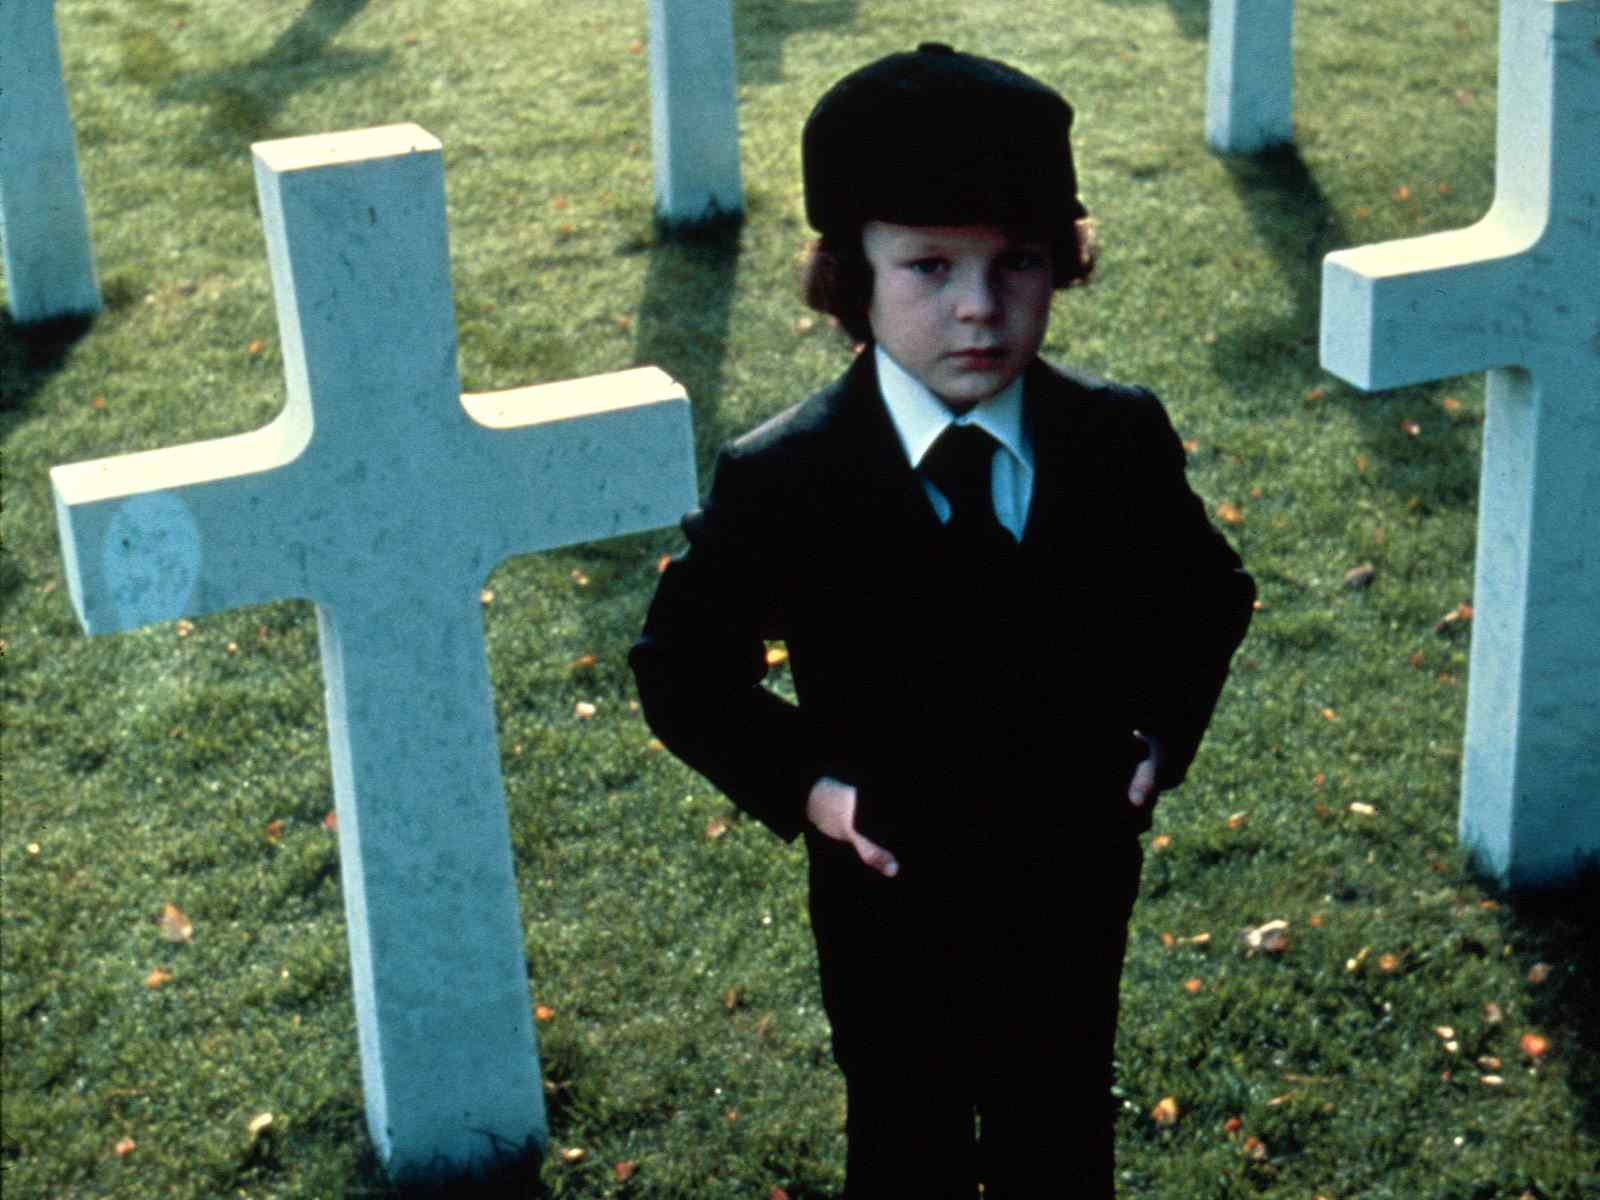 damien from the hit demonic movie The Omen from 1976 directed by richard donner